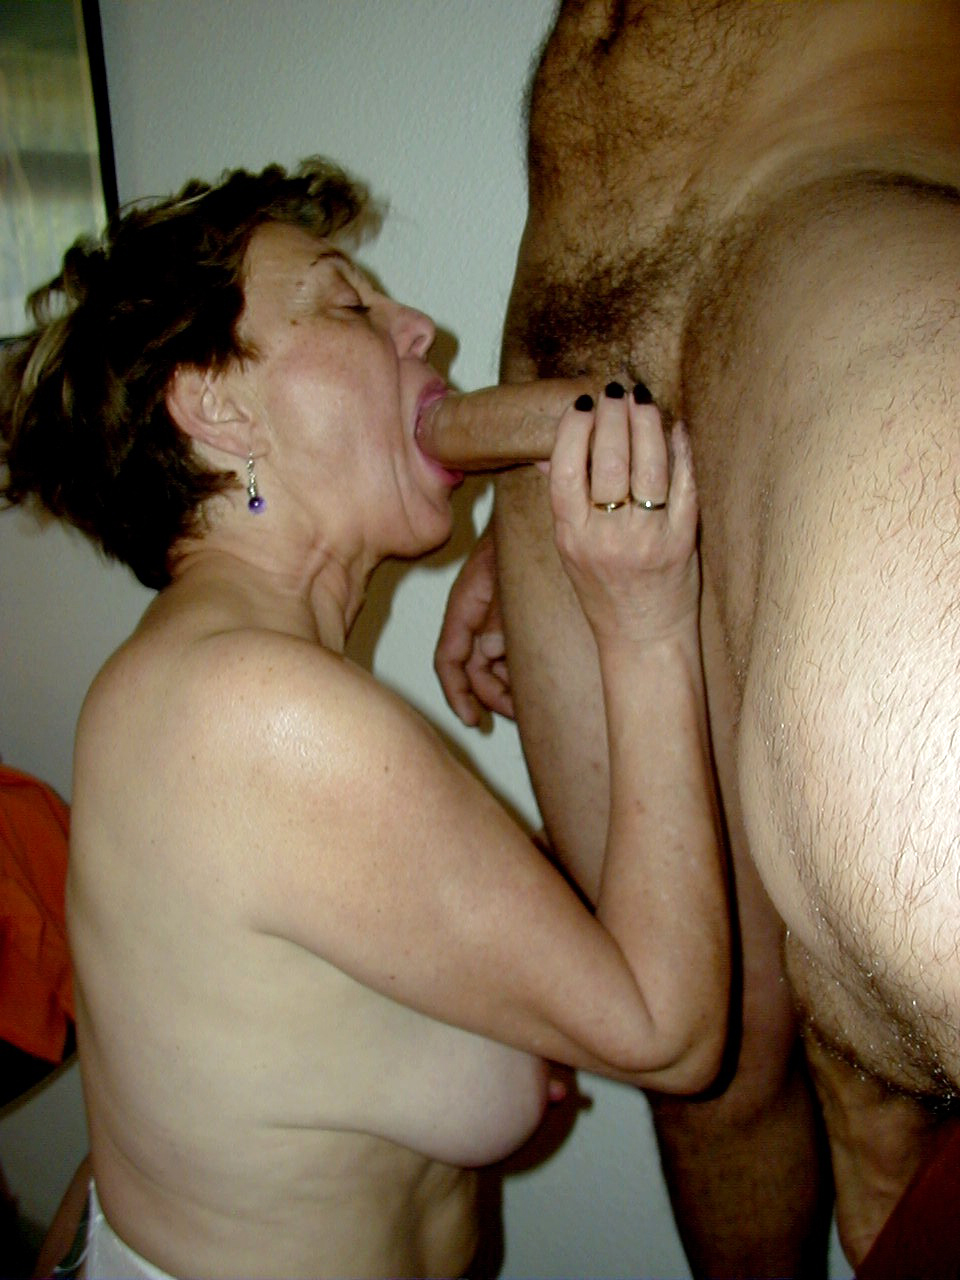 Black and white rough sex